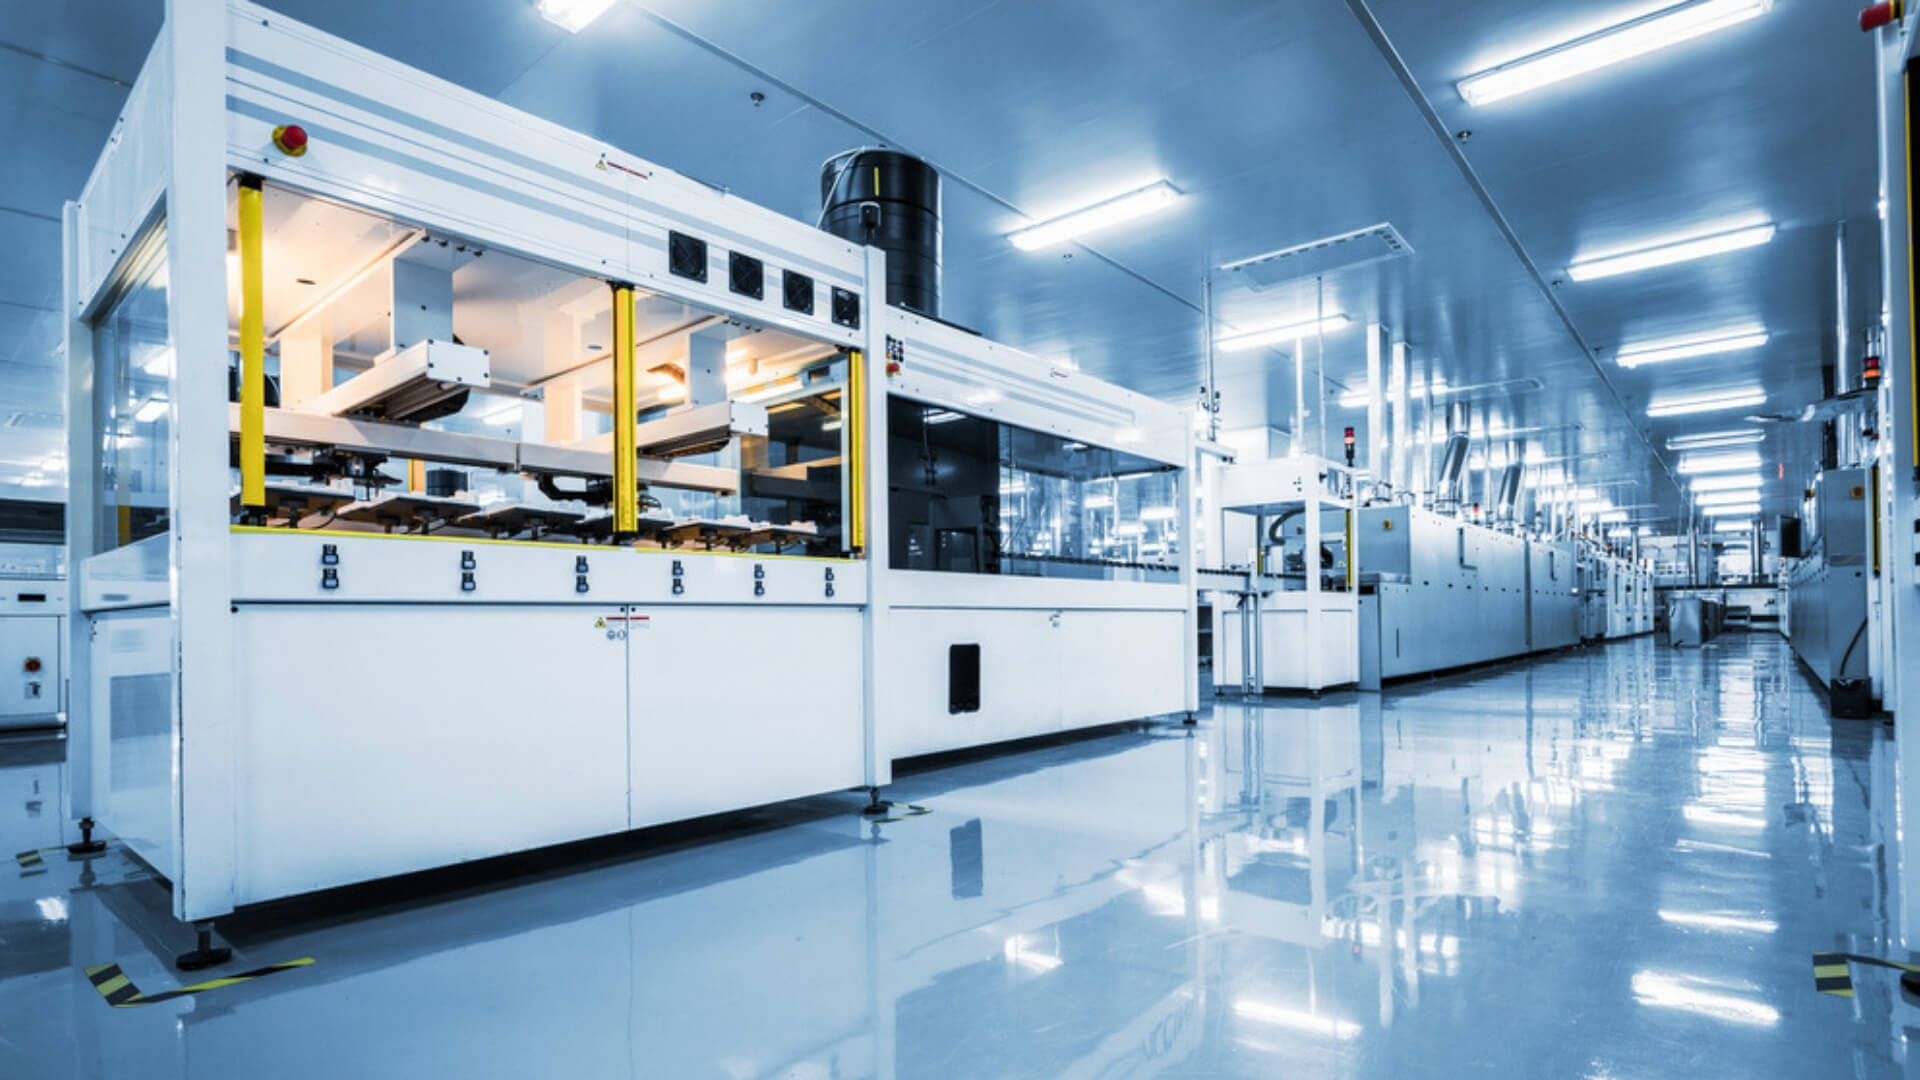 Five Methods for Excelling at Cleanroom Manufacturing